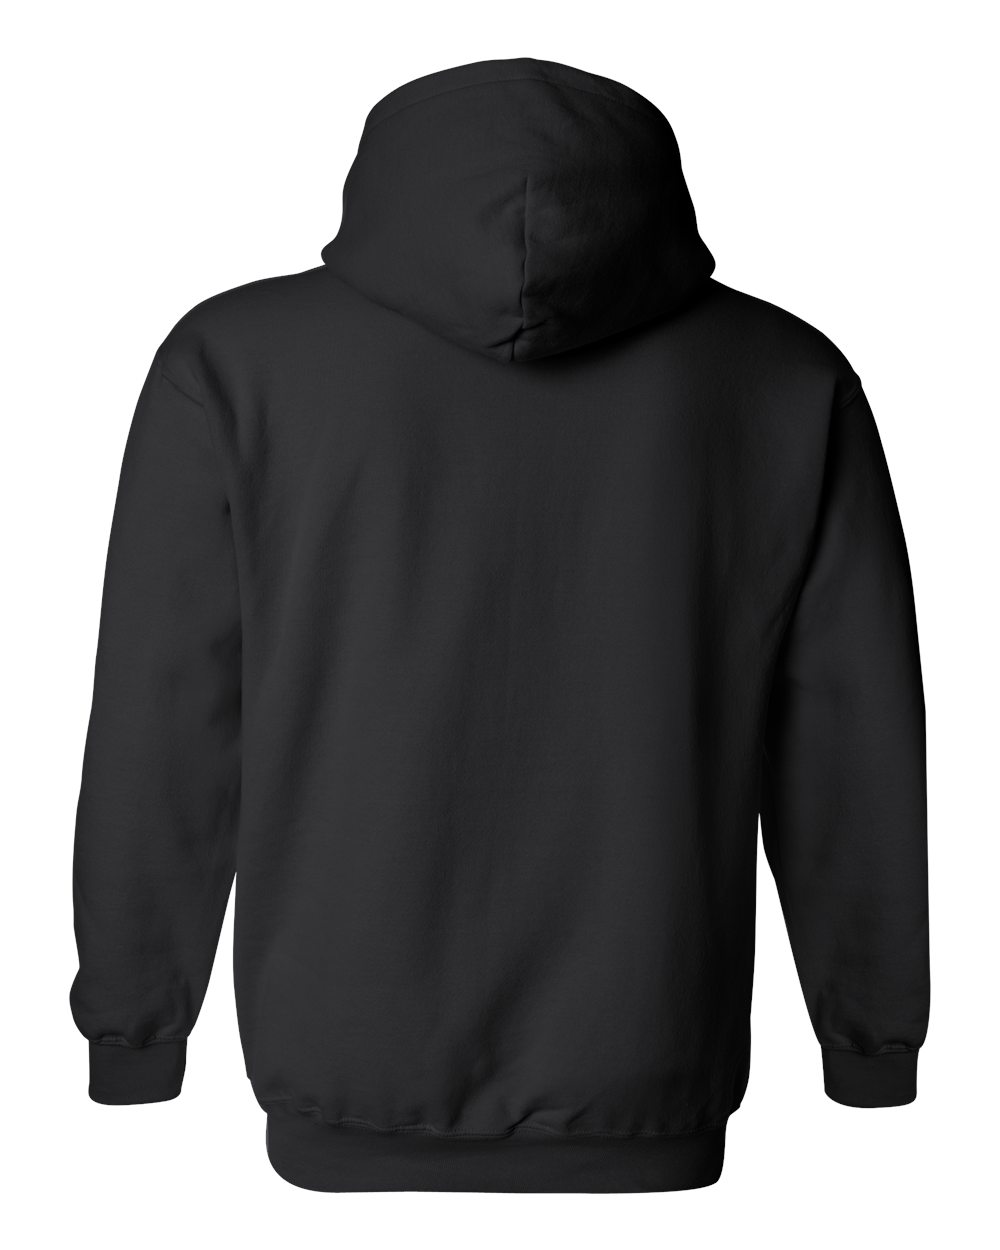 Gildan 50 50 Poly Cotton Adult Hooded Sweatshirt Item